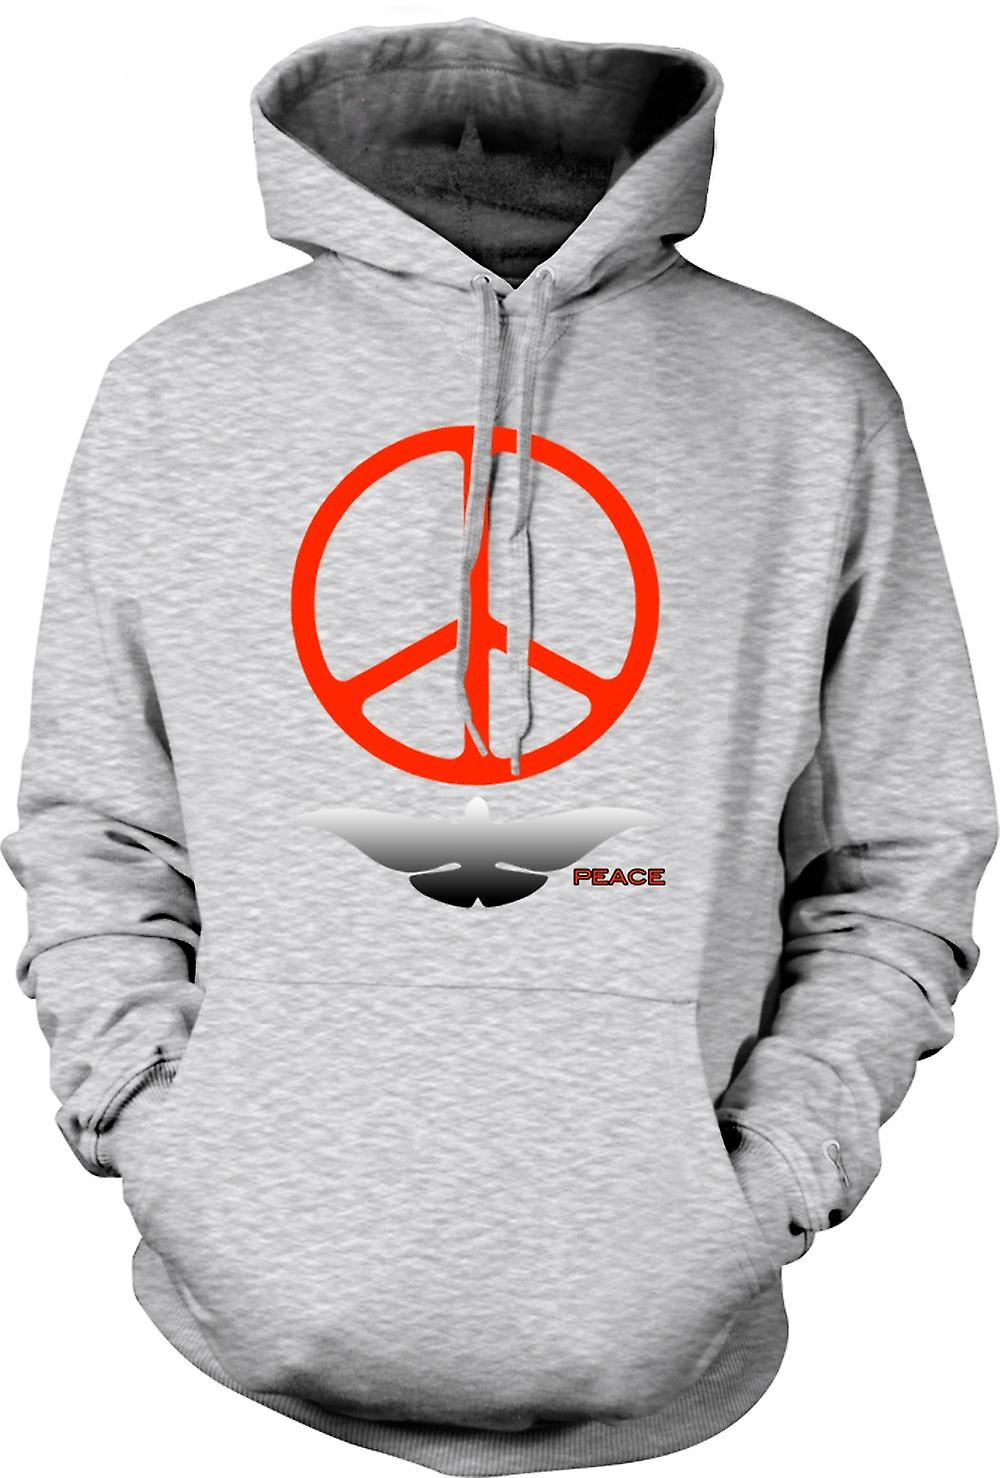 Mens Hoodie - Greenpeace Love Dove CND